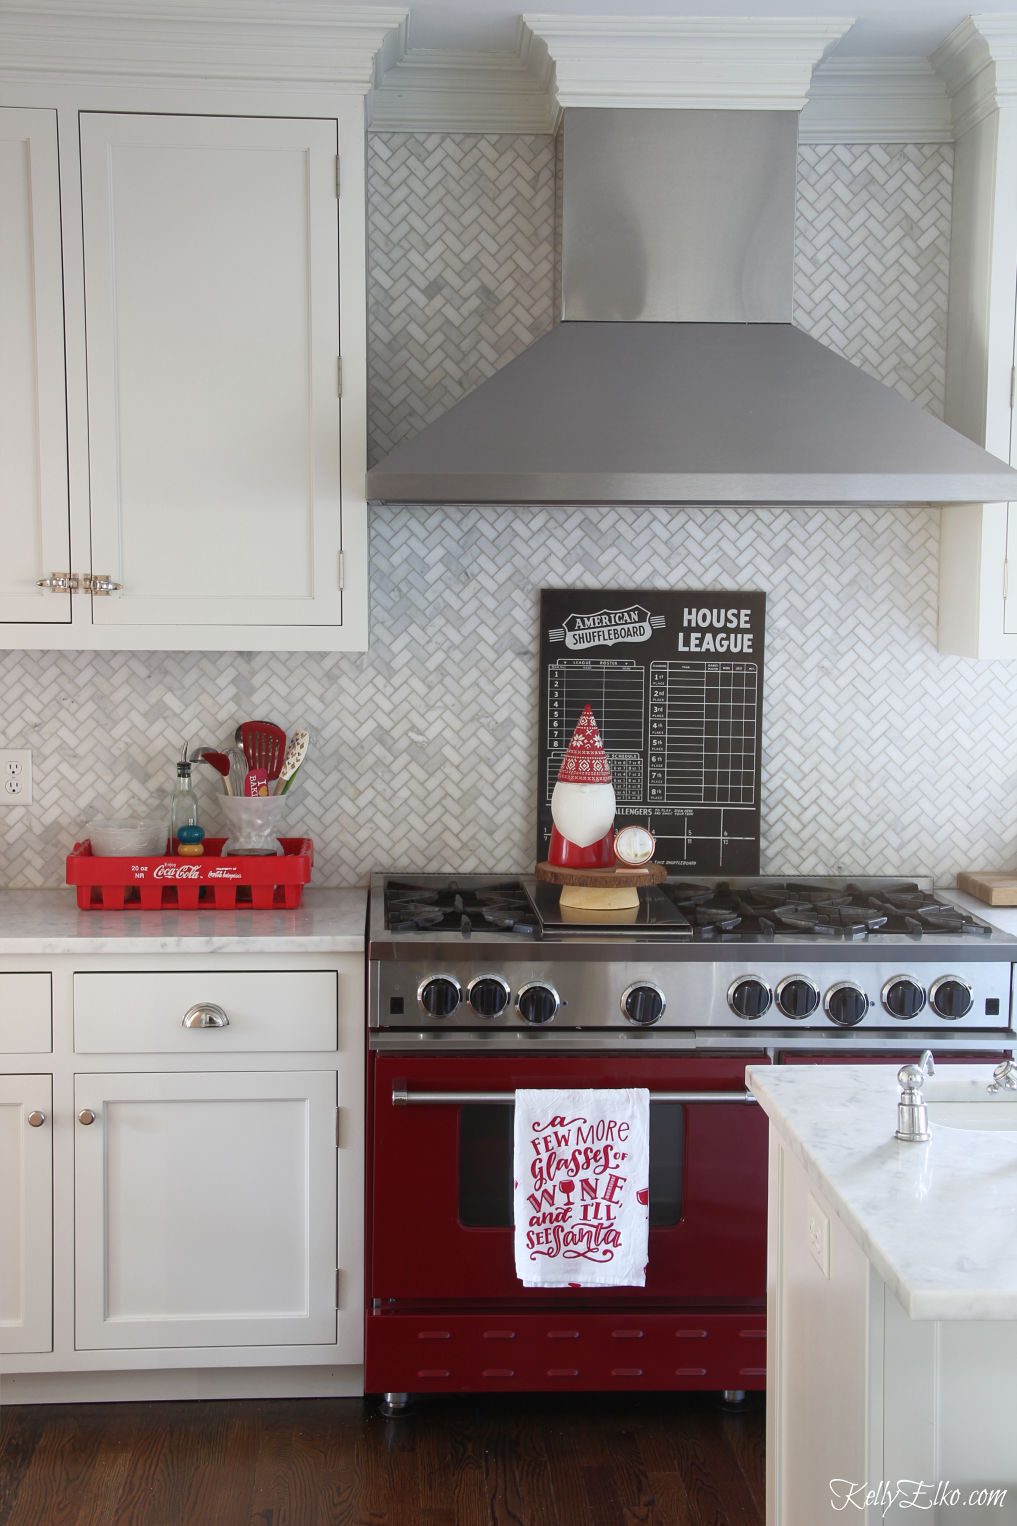 Love this red stove and white herringbone backsplash in this fun Christmas kitchen kellyelko.com #whitekitchen #herringbonetile #backsplash #christmaskitchen #christmasdecor #christmasdecorating #vintagechristmas